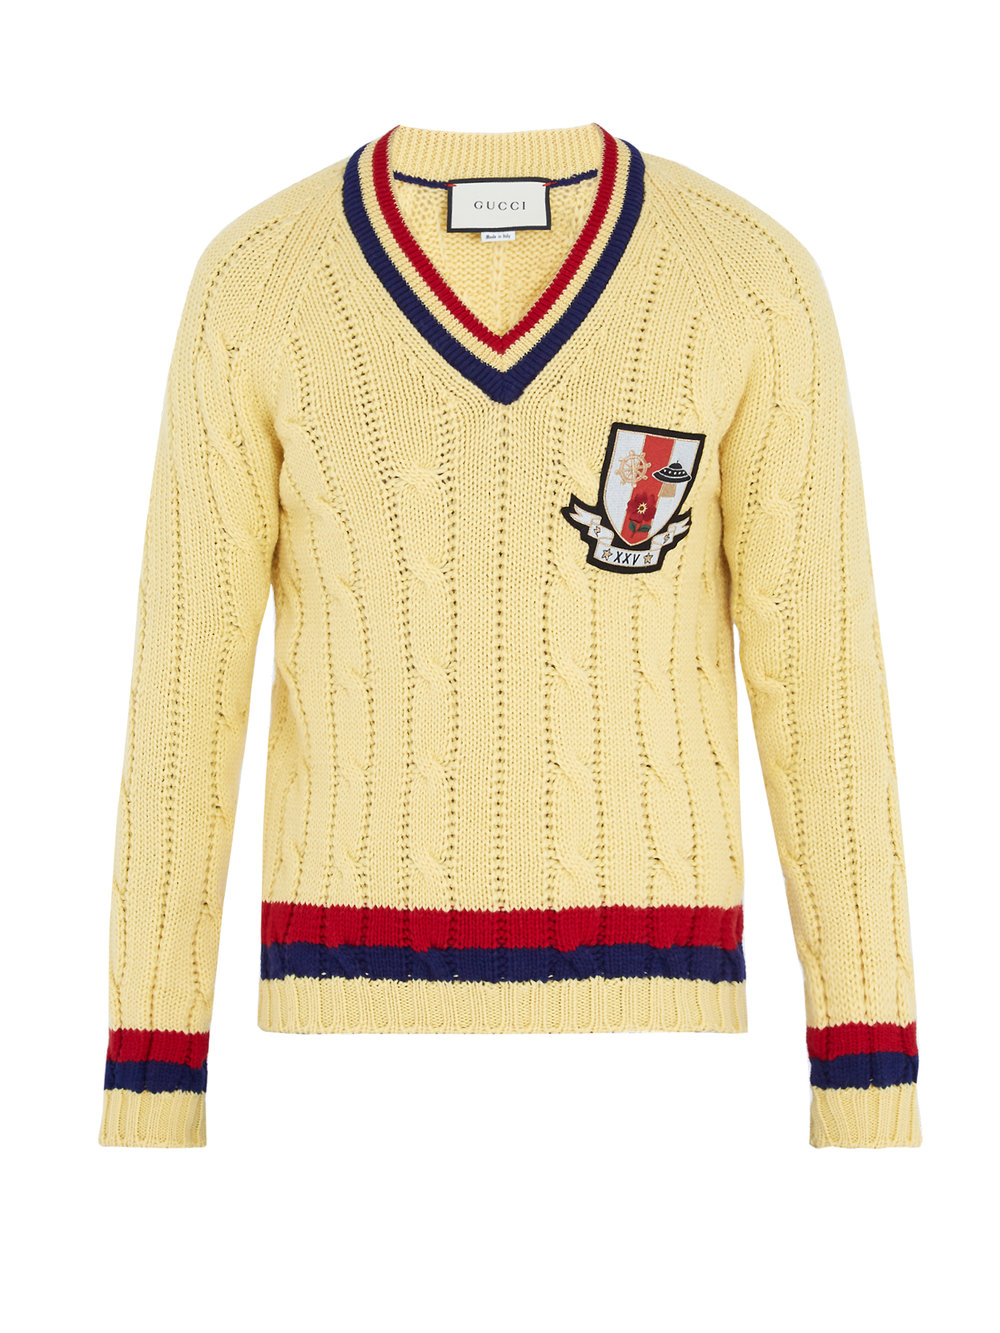 4.Gucci sweater at MATCHESFASHION.COM.Jpeg